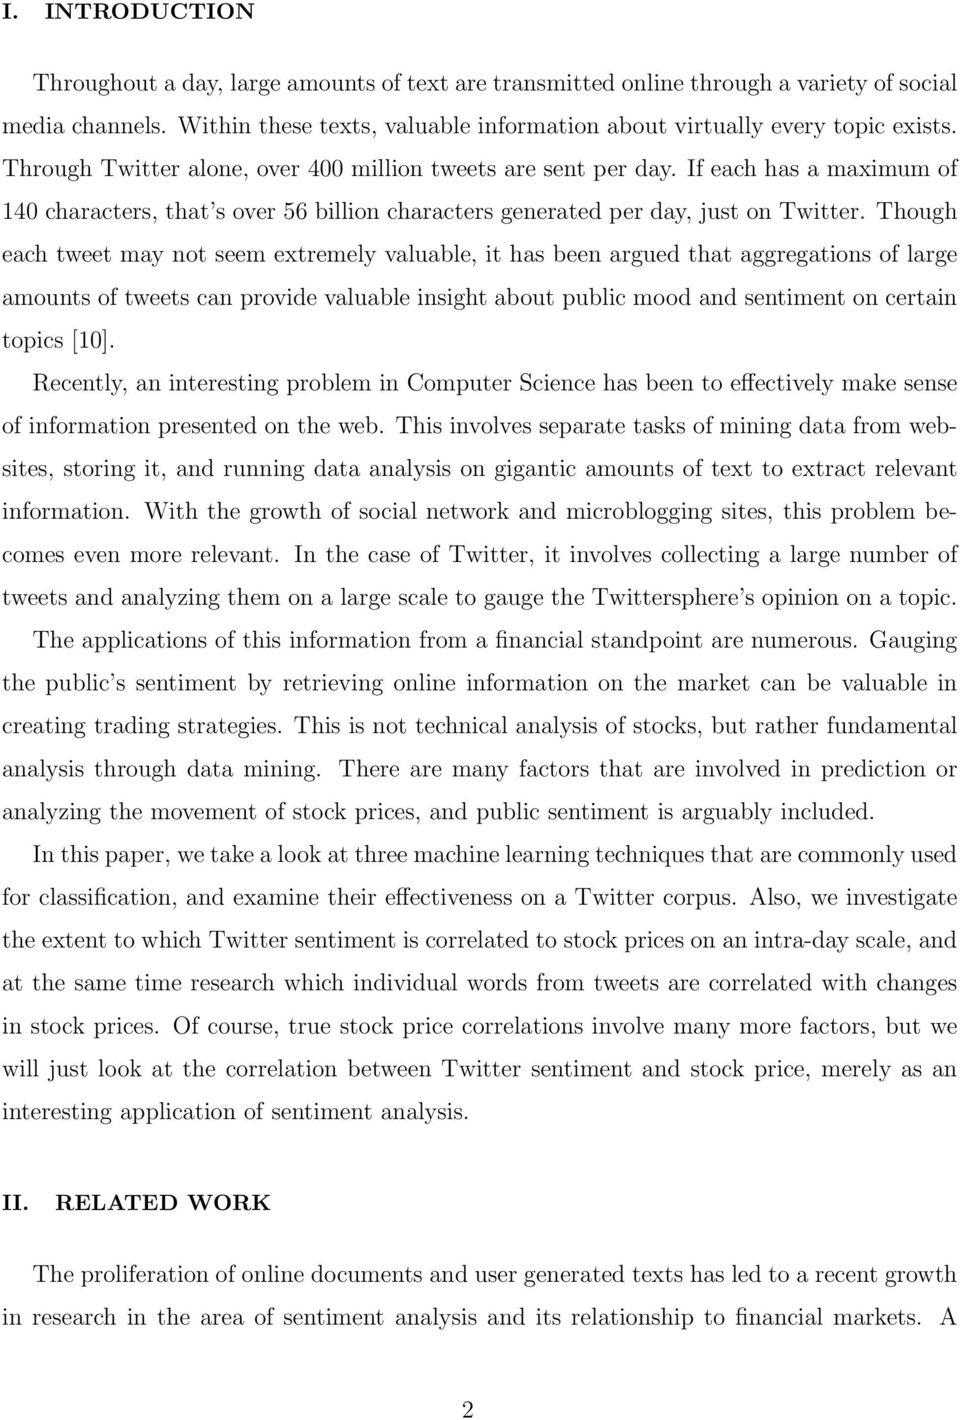 Though each tweet may not seem extremely valuable, it has been argued that aggregations of large amounts of tweets can provide valuable insight about public mood and sentiment on certain topics [10].